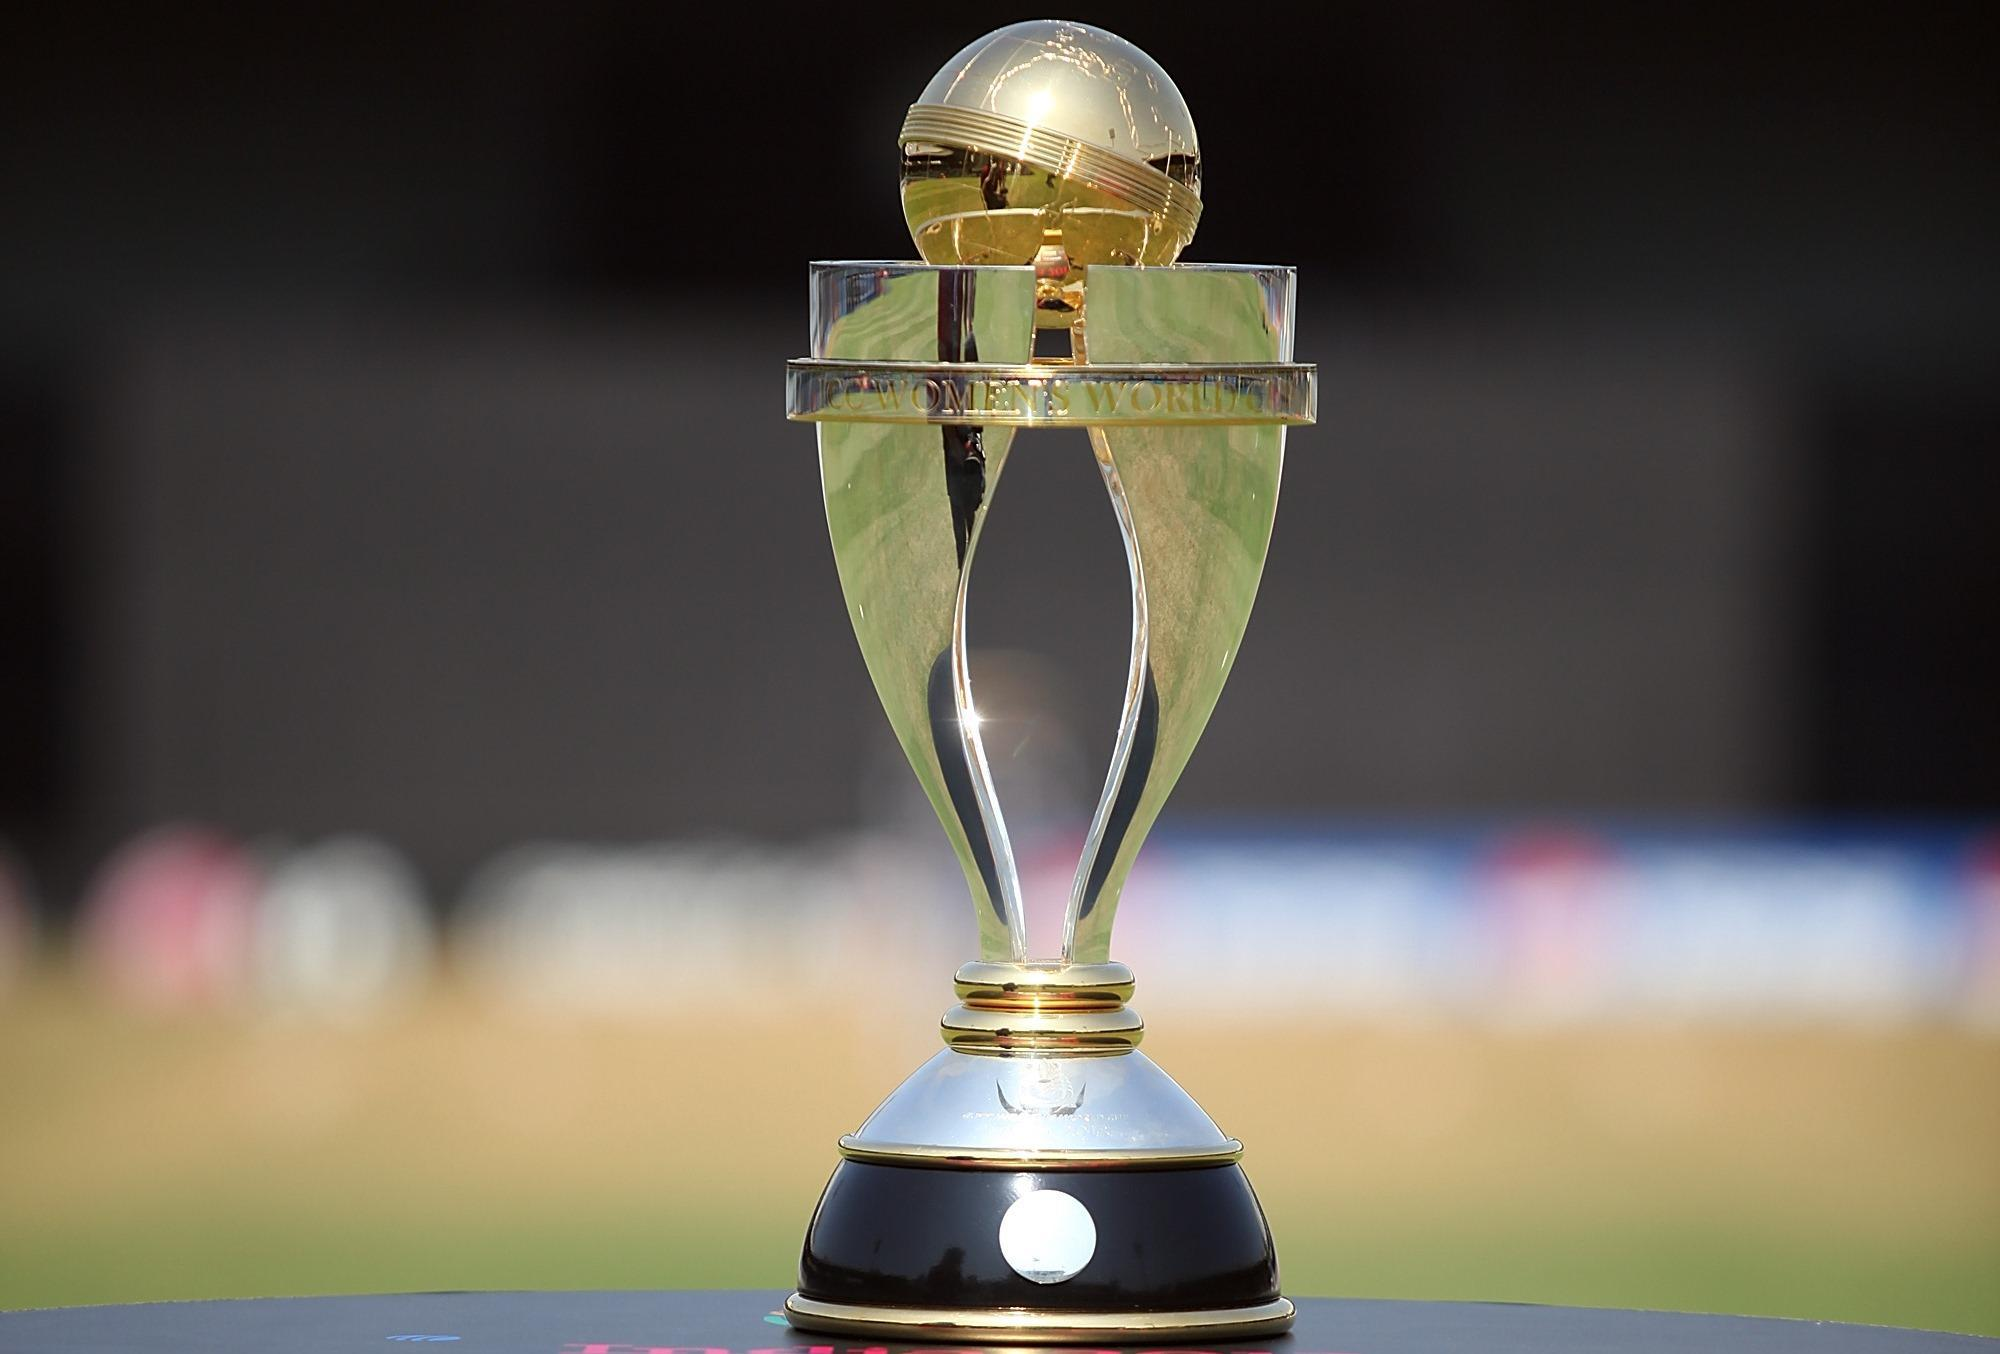 cricket world cup Follow the cricket world cup live updates, with live cricket scores and the latest news and features throughout the series.